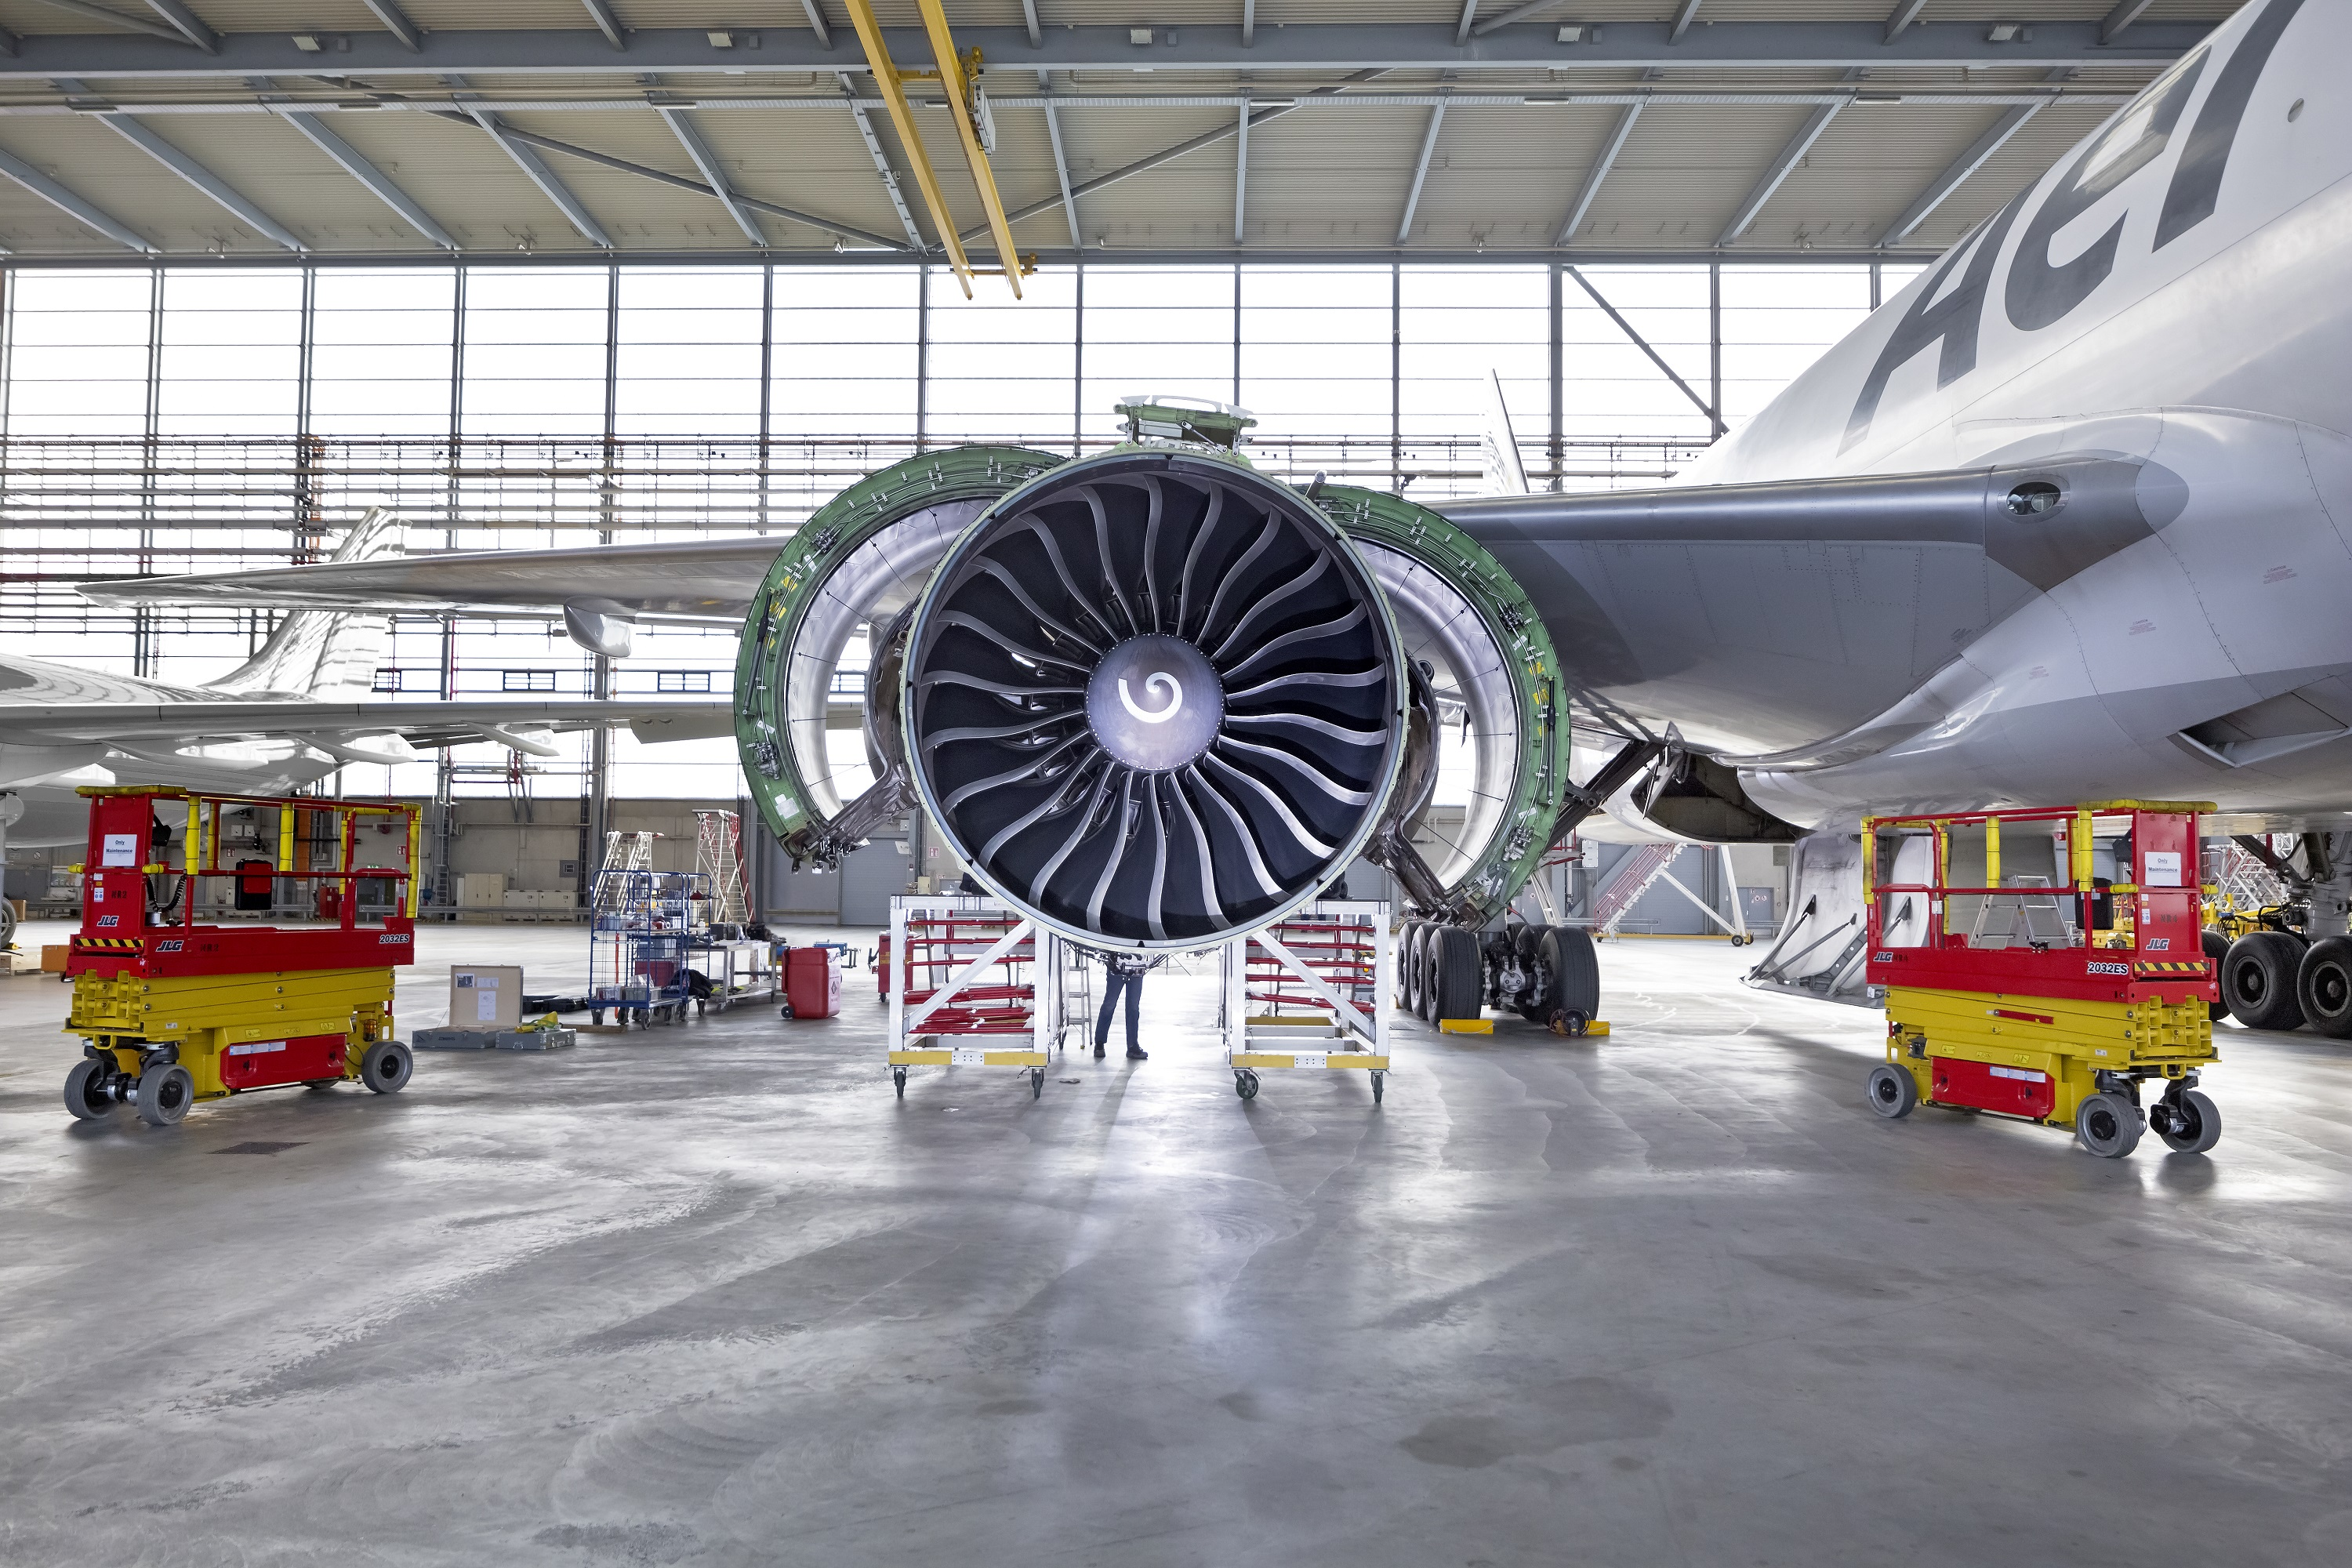 MTU Maintenance and Aerologic extend exclusive GE90-110B contract